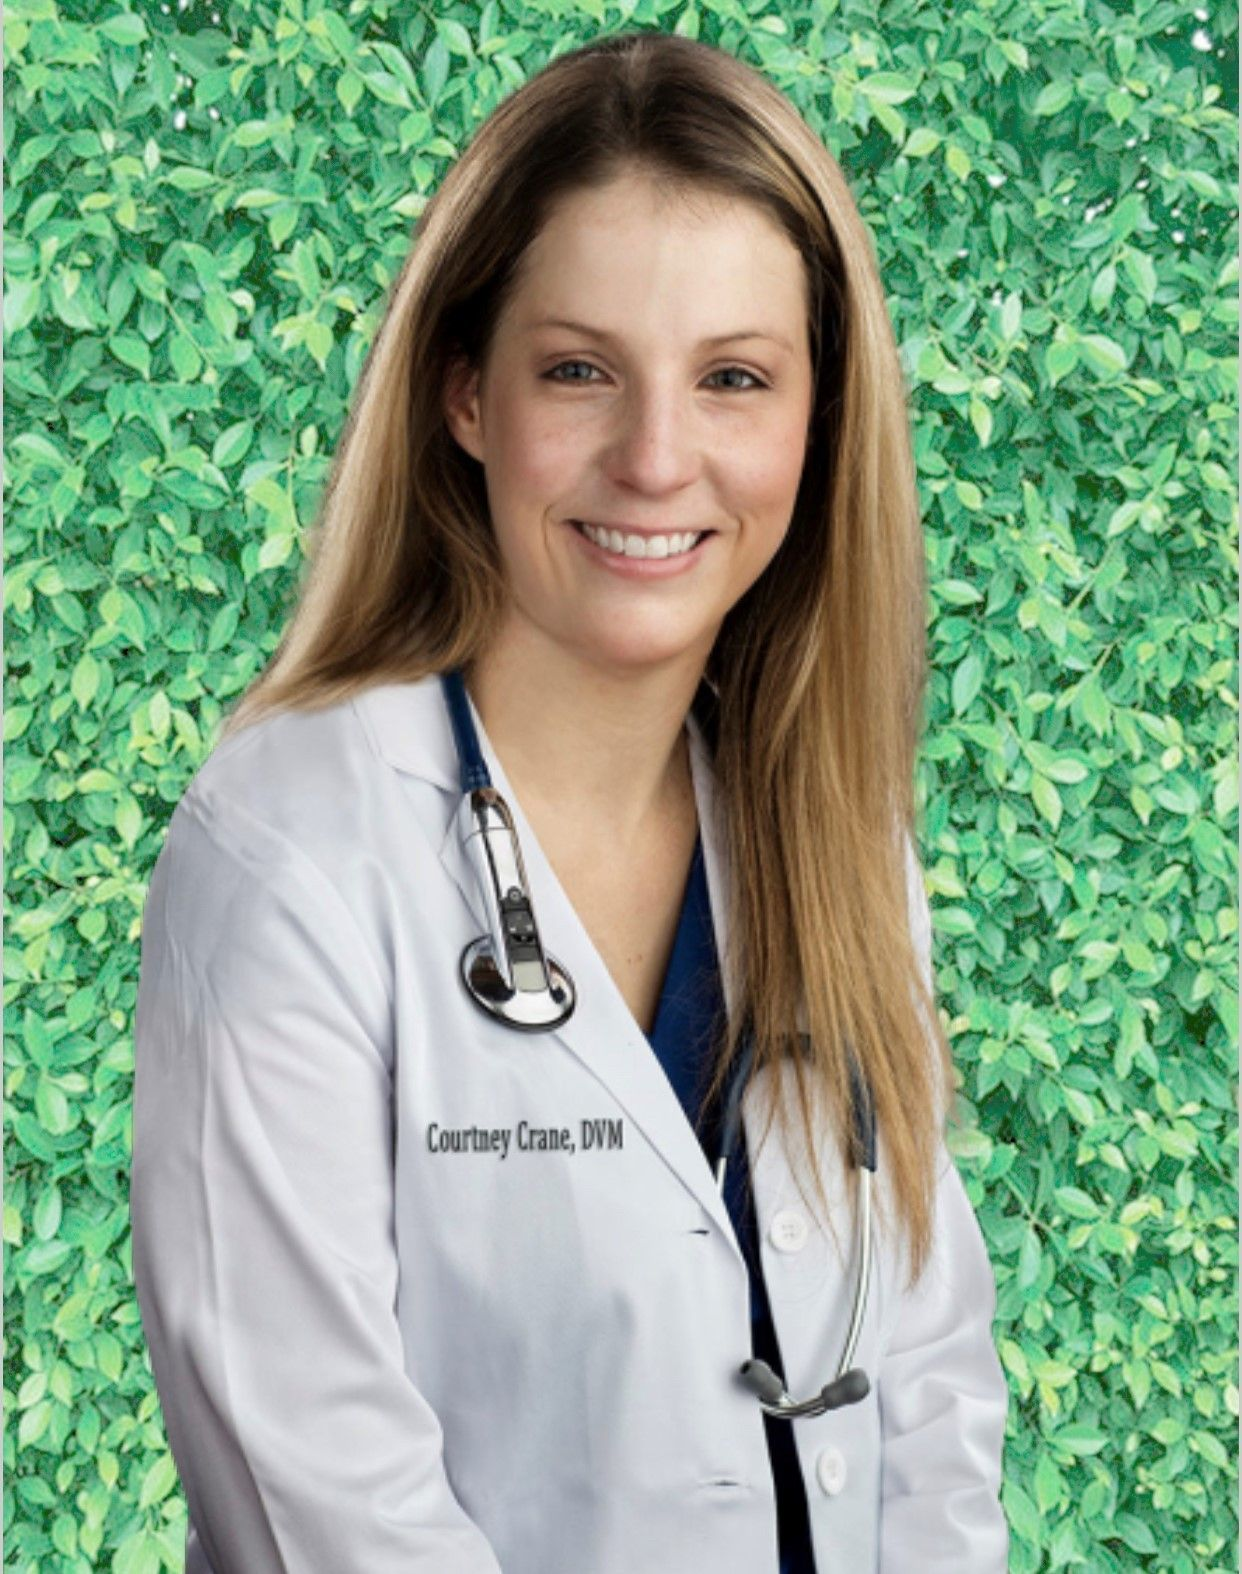 Dr. Courtney Crane